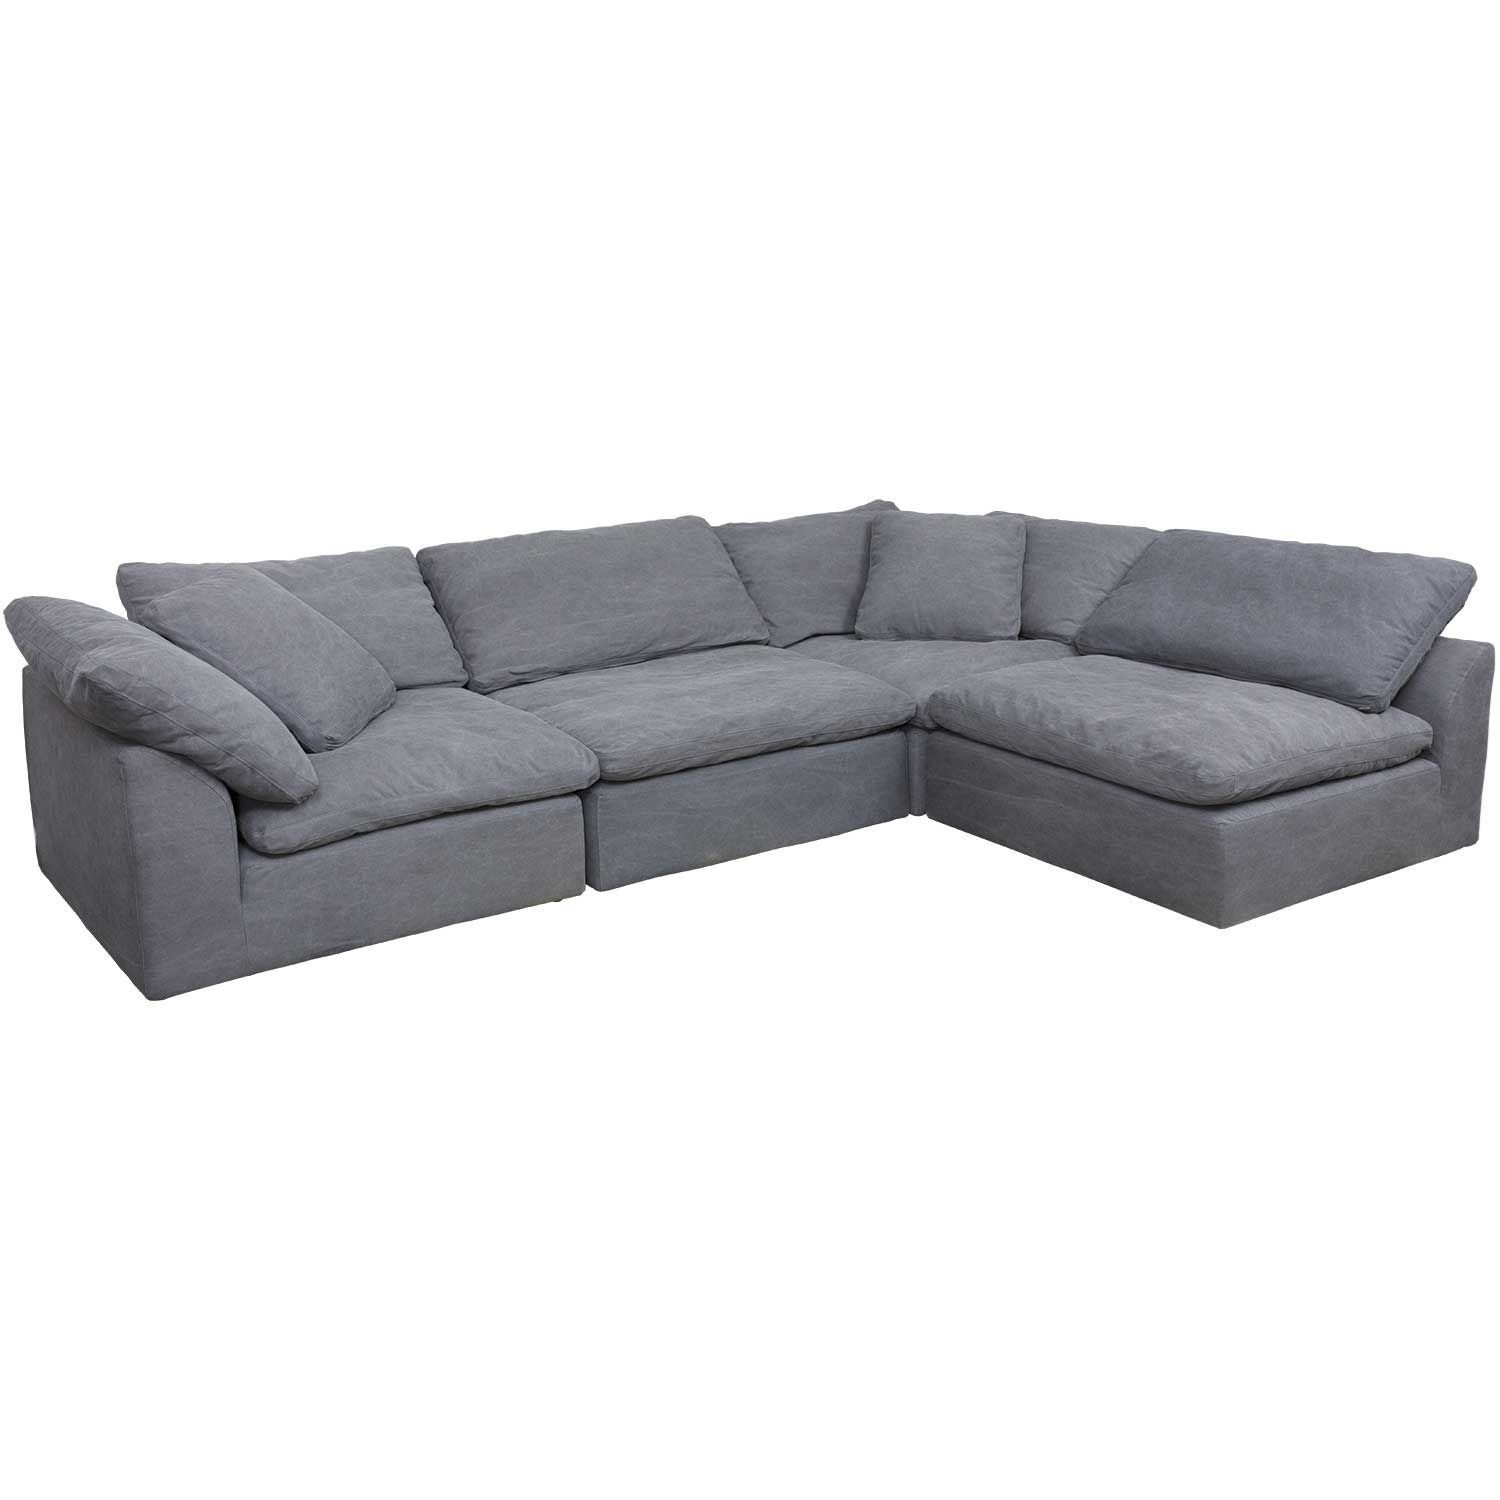 Vaughn Gray 4 Piece Sectional | 1458 51X2 37X2 | Synergy Home For Mesa Foam 2 Piece Sectionals (View 16 of 25)